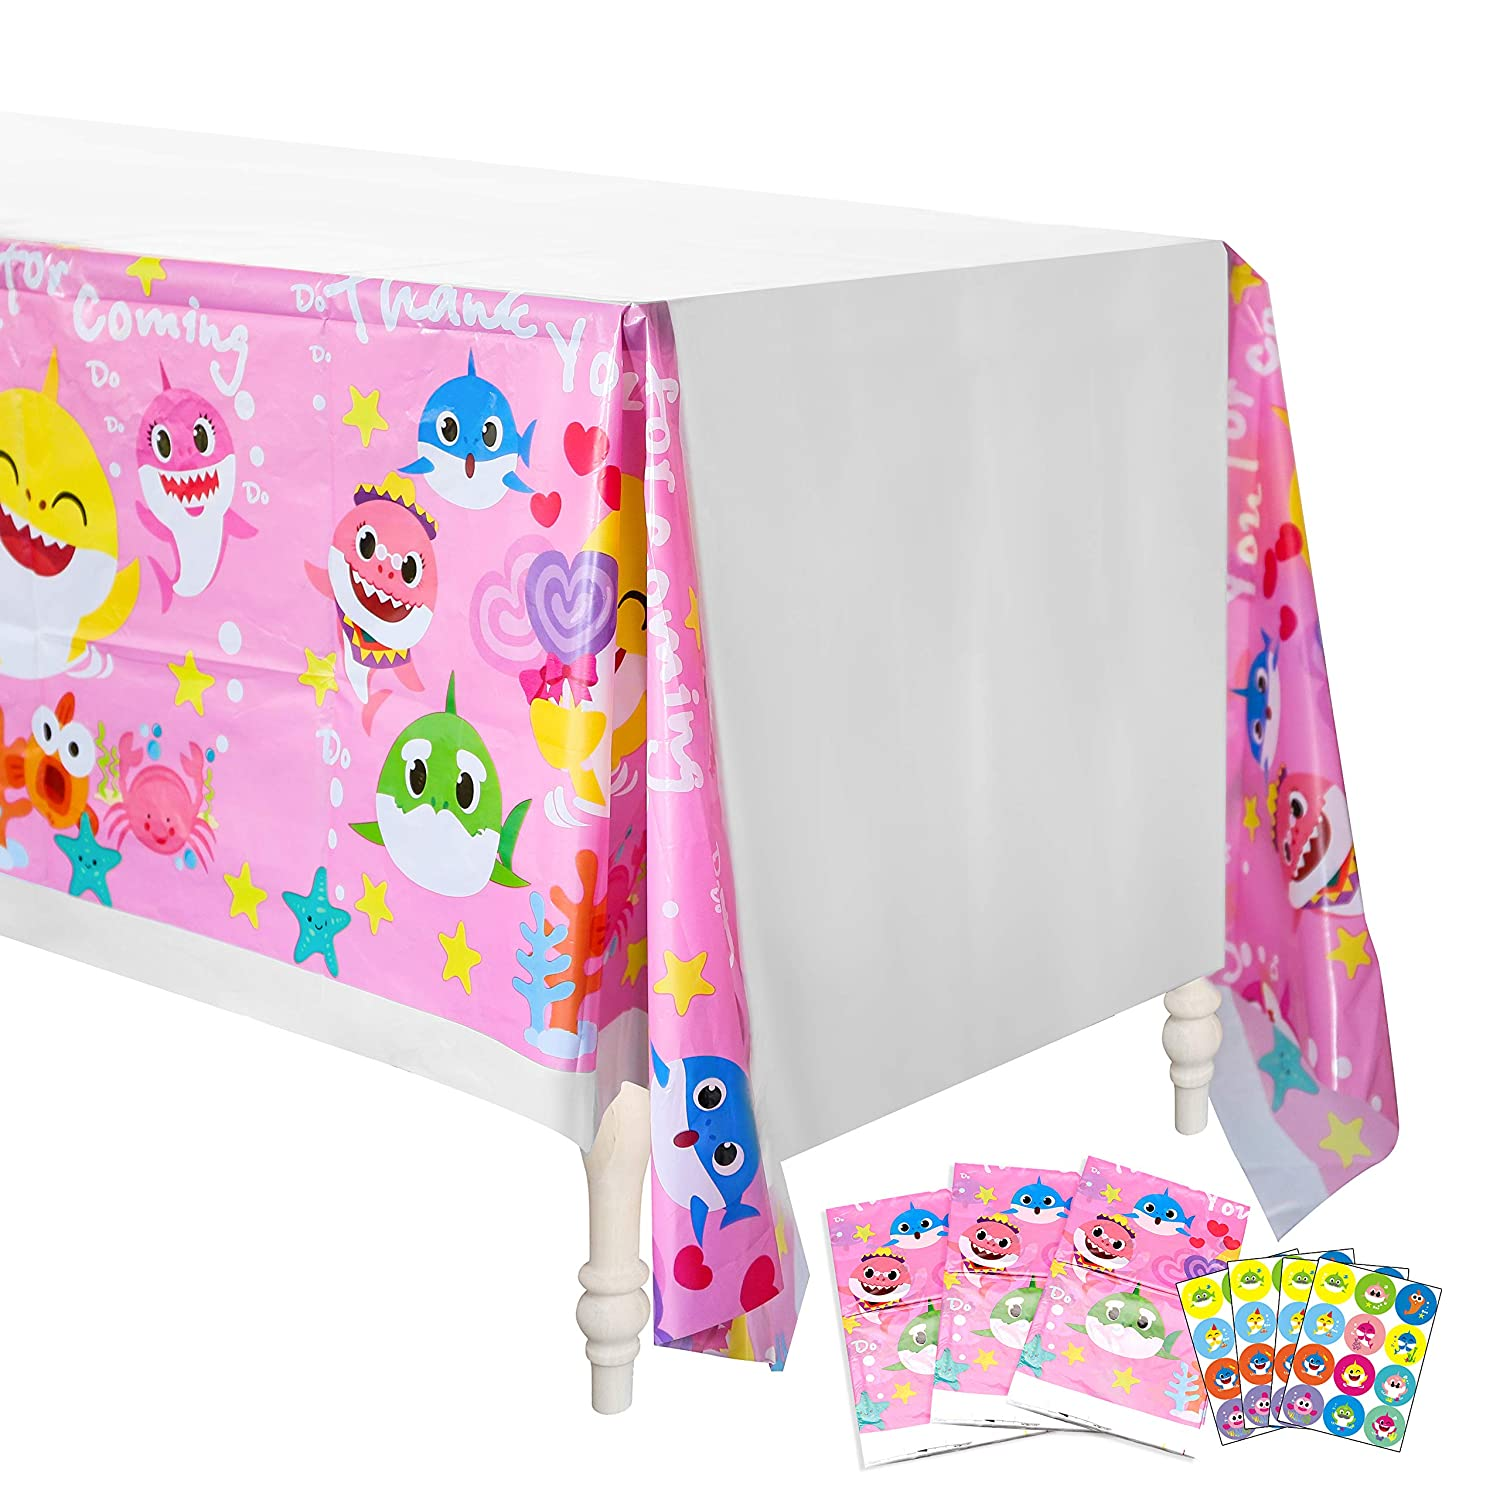 Thank You for Coming Shark Theme Party Decoration Supplies Ticiaga Baby Cute Shark Tablecloth 4 Pack 42.5 x 71 Inch Pink Doo Doo Shark Family Disposable Plastic Picnic Table Cover for Kids Birthday